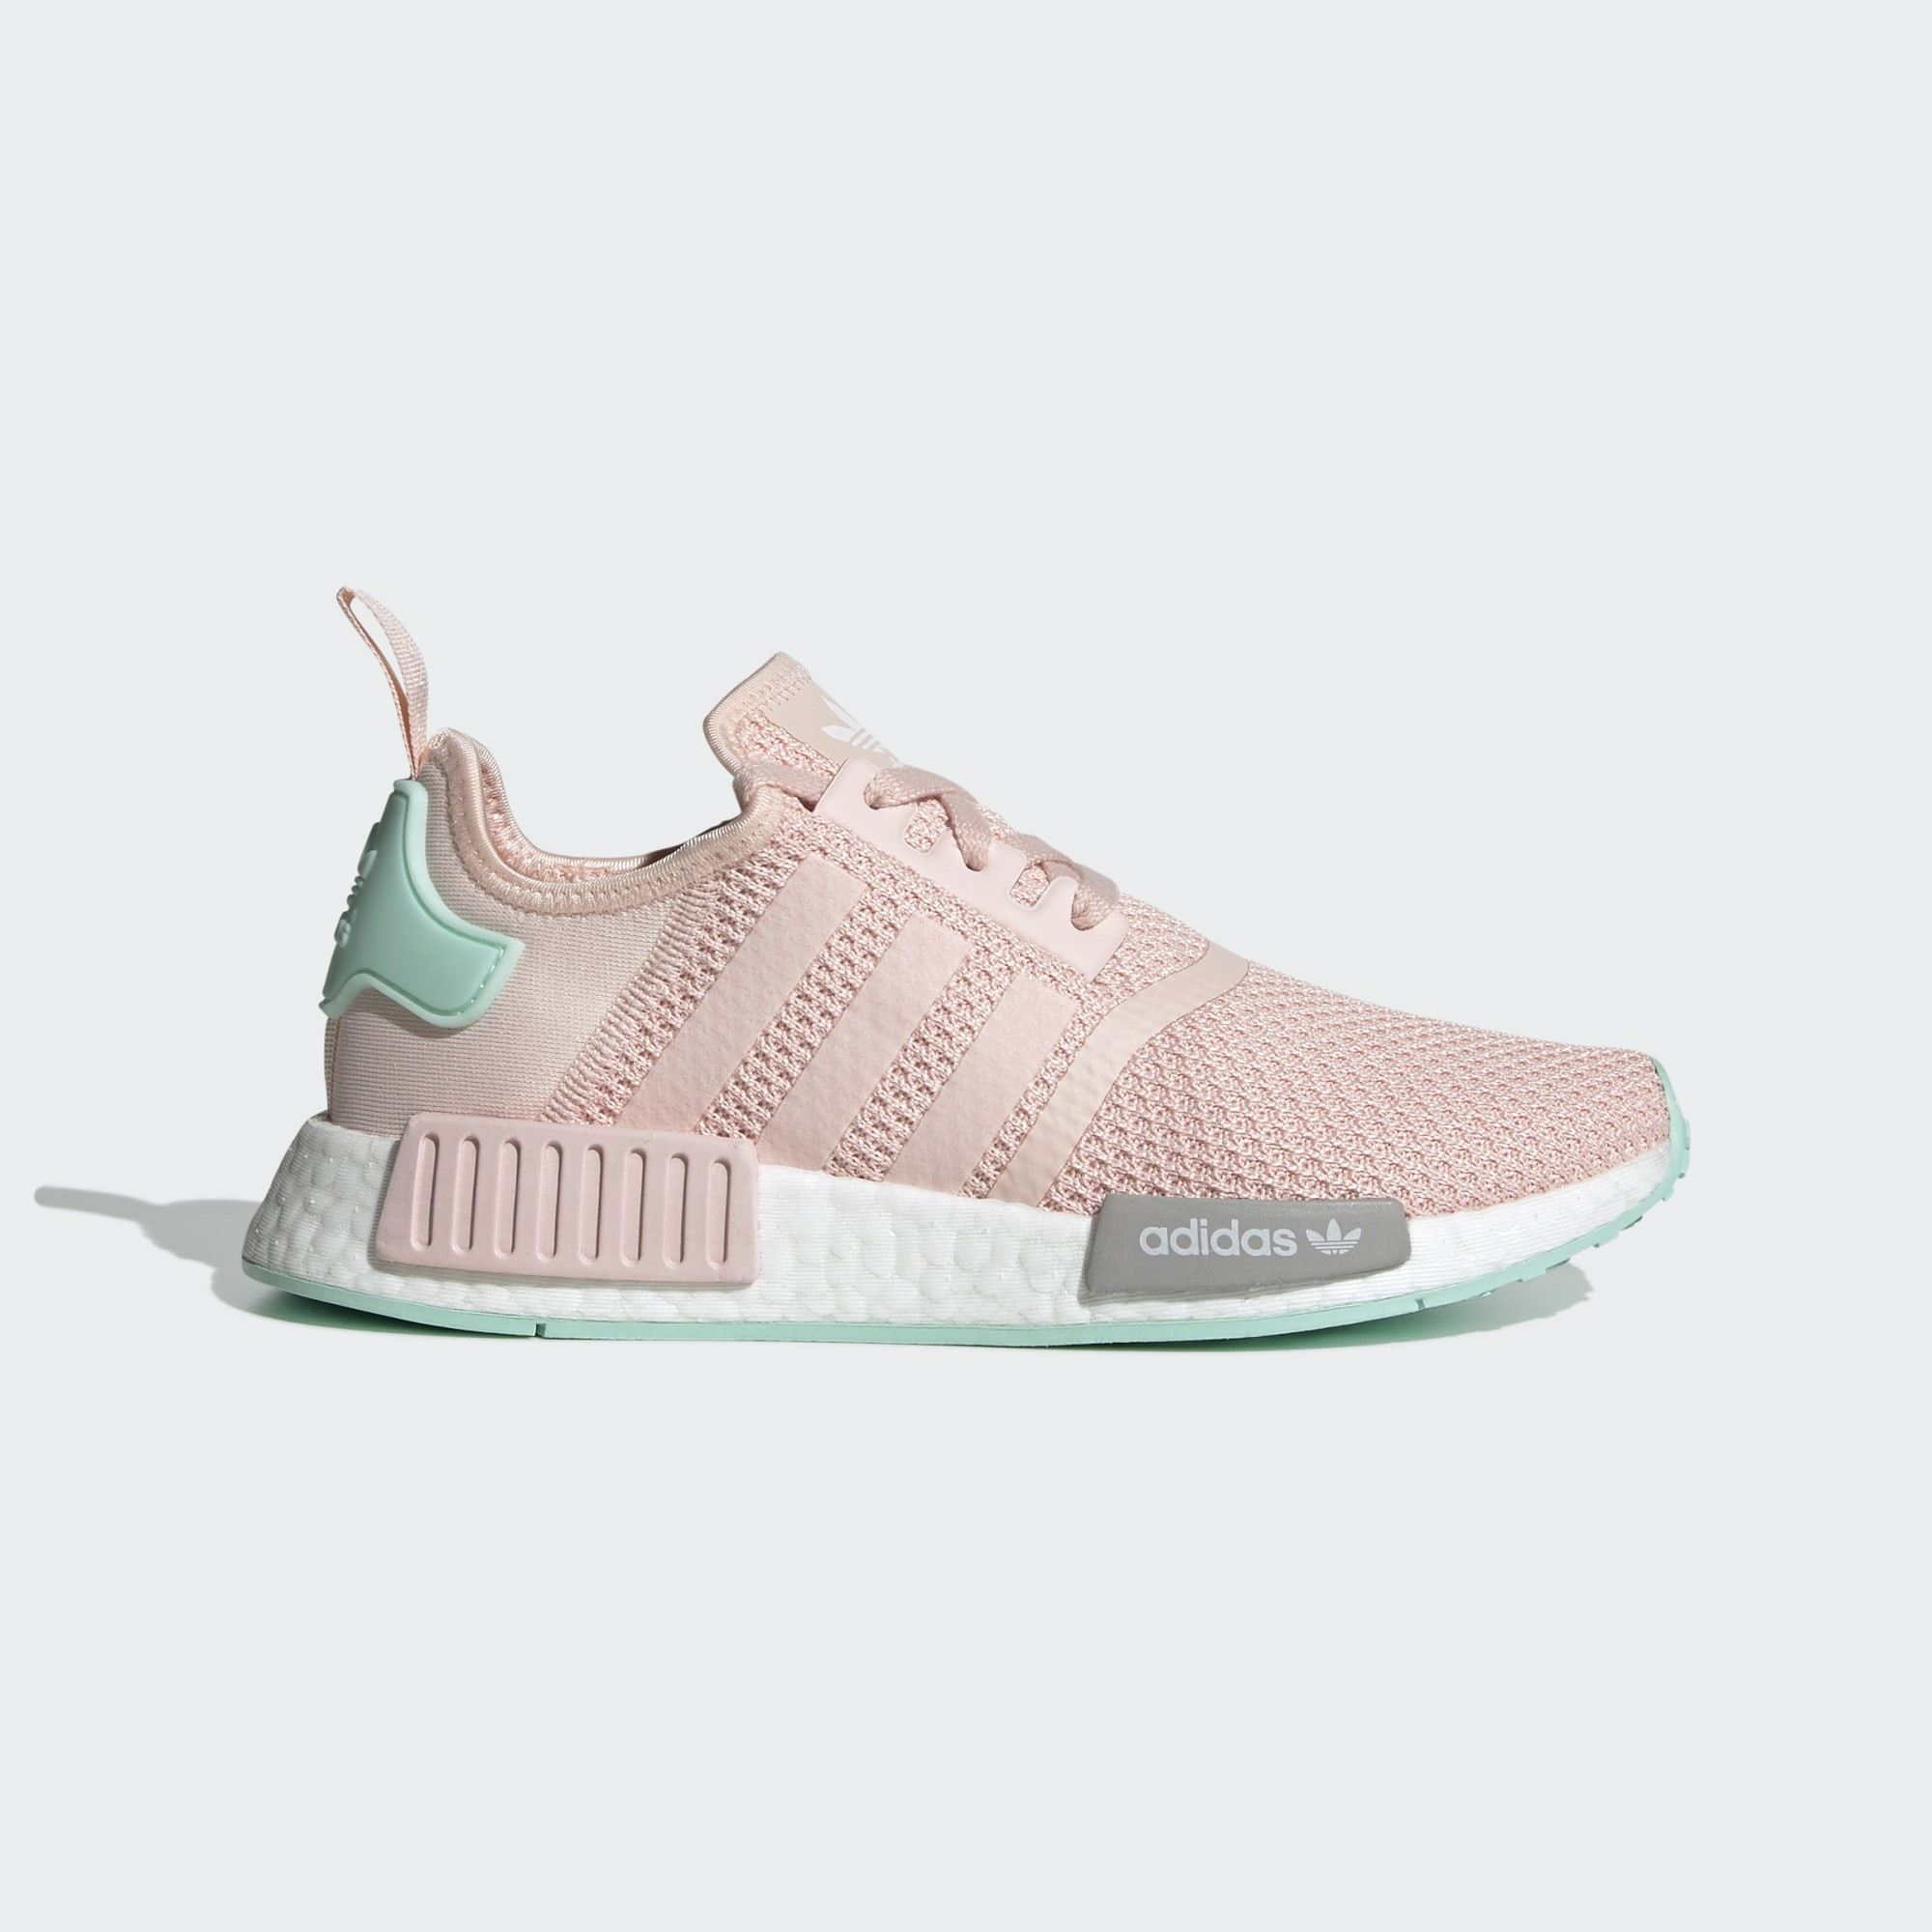 Adidas NMD_R1 FX7198 Icey Pink/Grey Two/Clear Mint